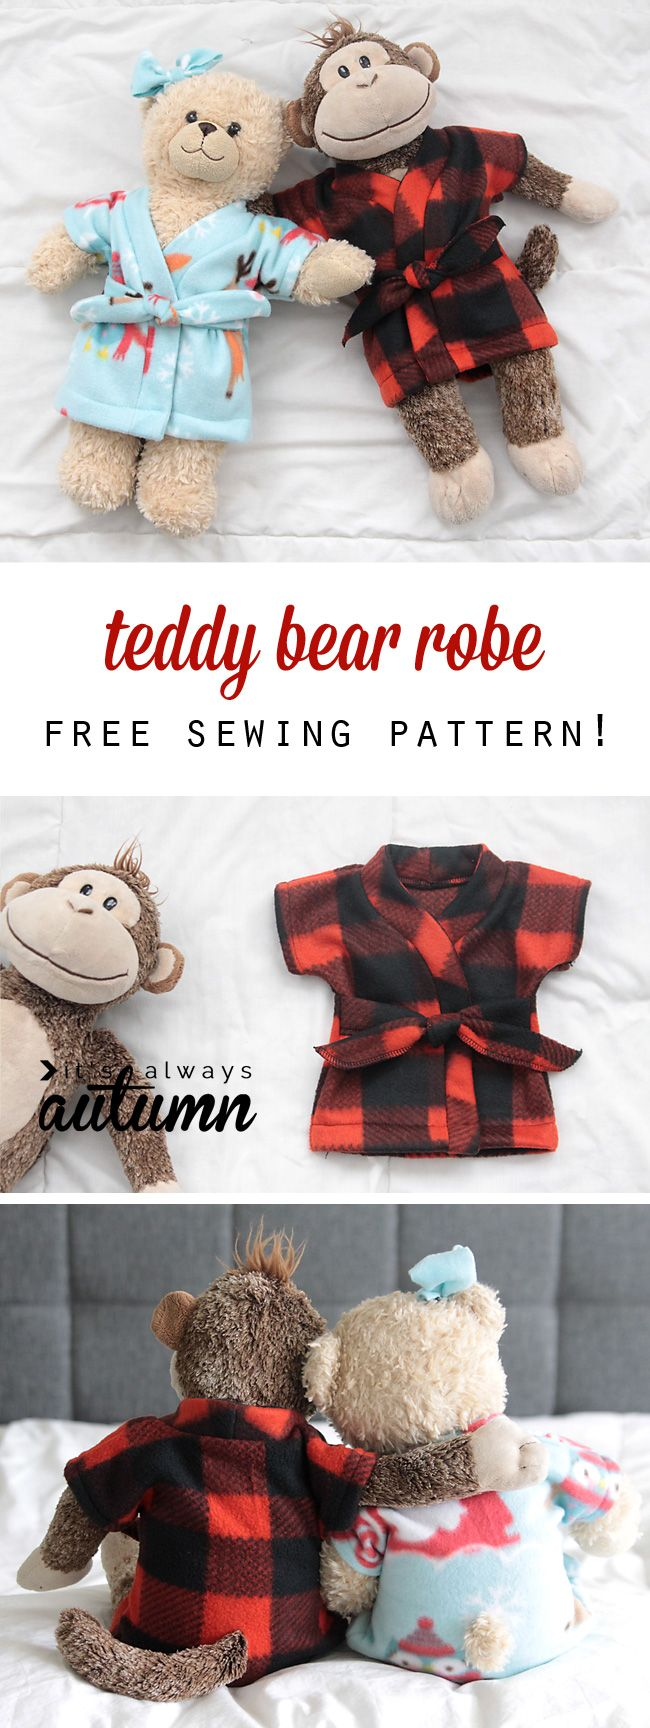 Free Stuffed Animal Or Teddy Bear Robe Pattern And Easy To Follow Sewing  Tutorial How